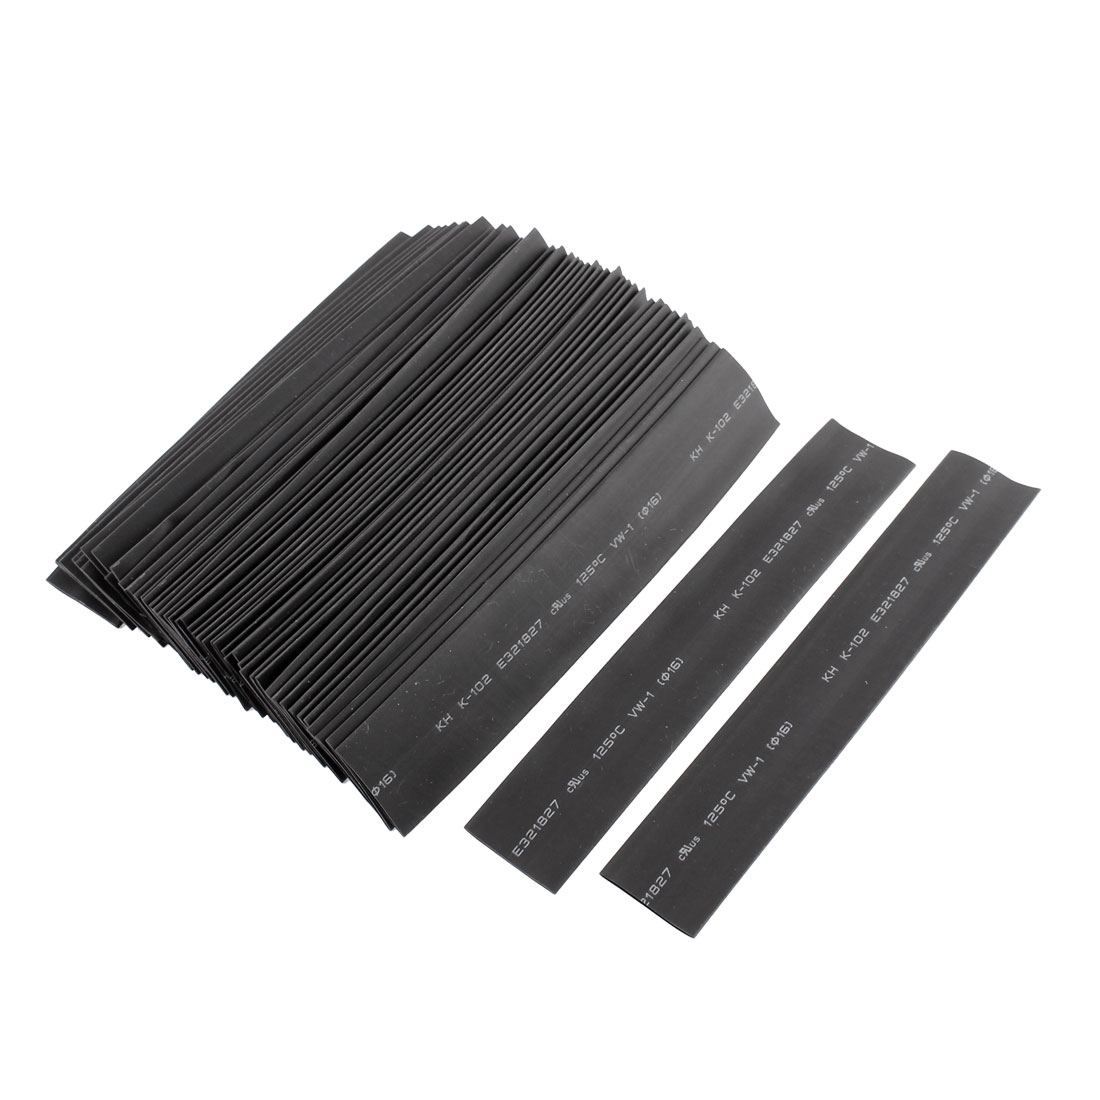 50pcs 15cm Long 16mm Dia 2:1 Black Polyolefin Heat Shrink Tubing Shrinkable Tube Sleeving Wrap